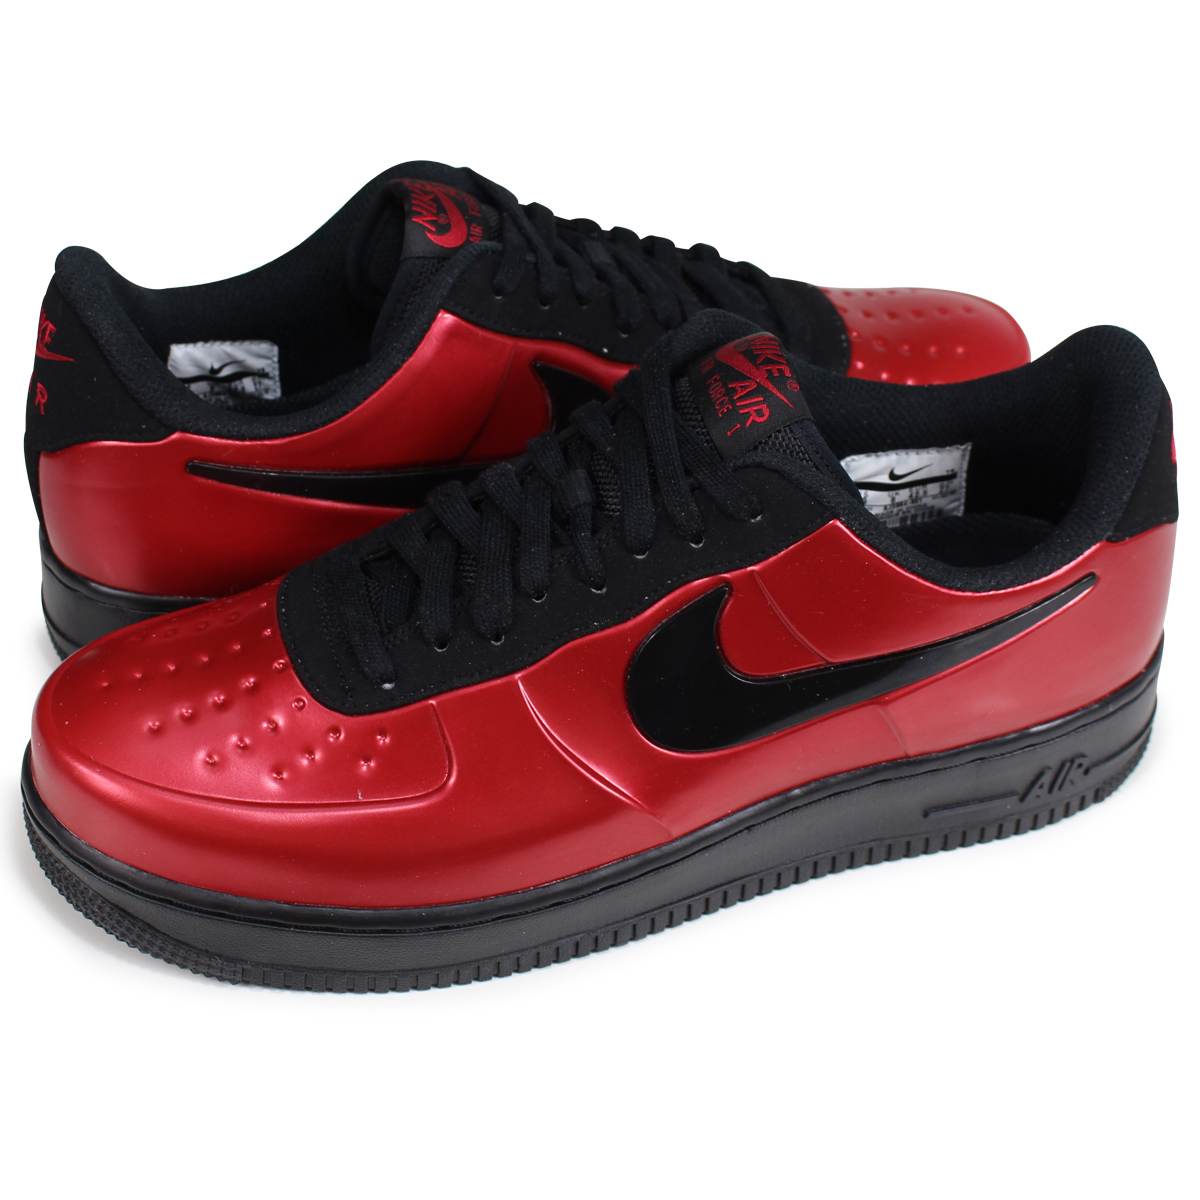 NIKE AIR FORCE 1 FOAMPOSITE PRO CUP AF1 Nike air force 1 sneakers men AJ3664 601 red [load planned Shinnyu load in reservation product 719